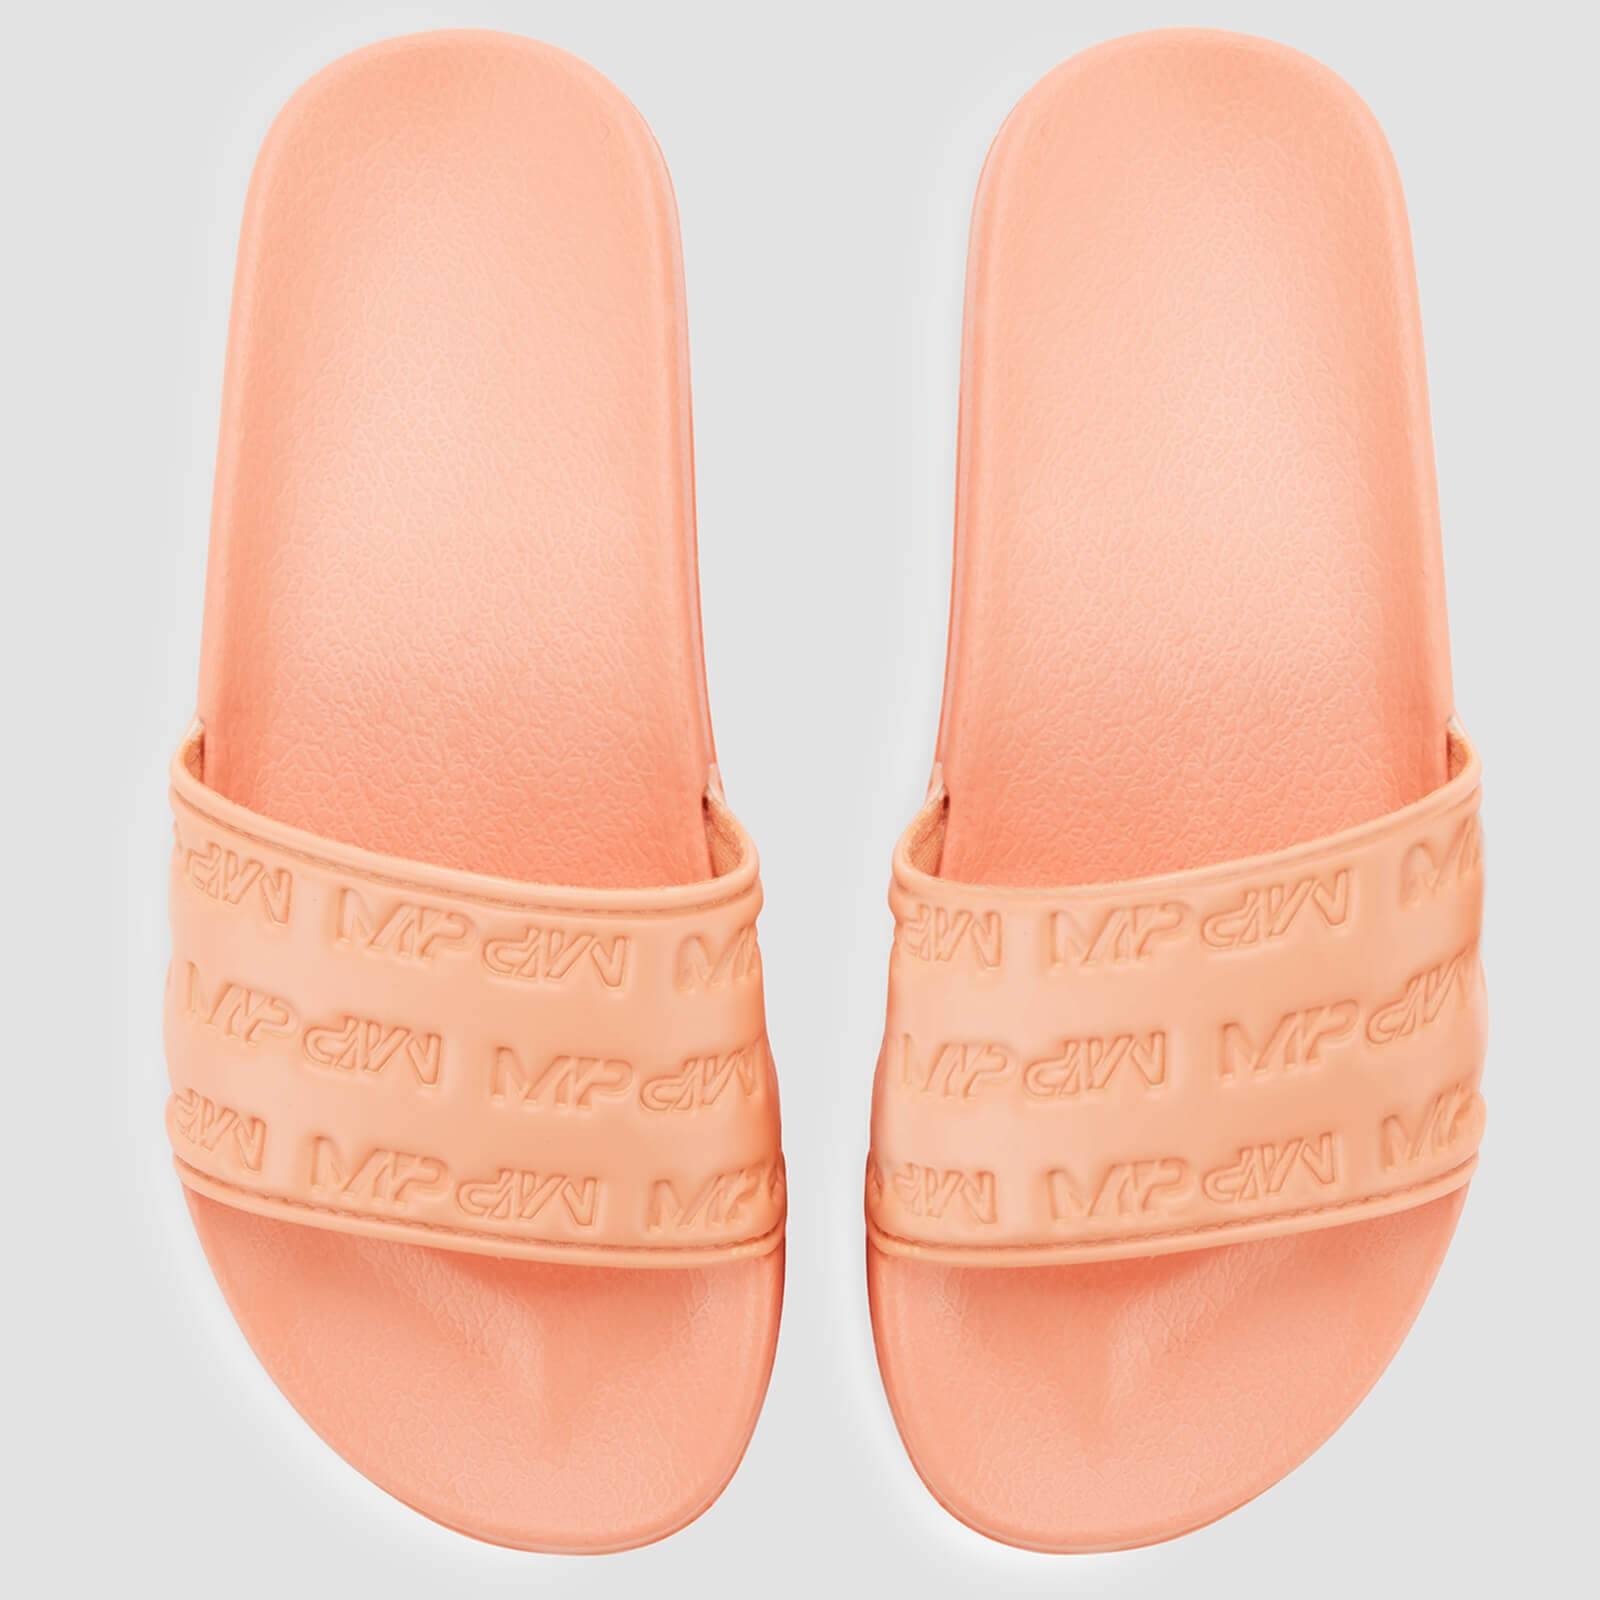 Myprotein MP Women's Sliders - Pastel Orange - UK 7